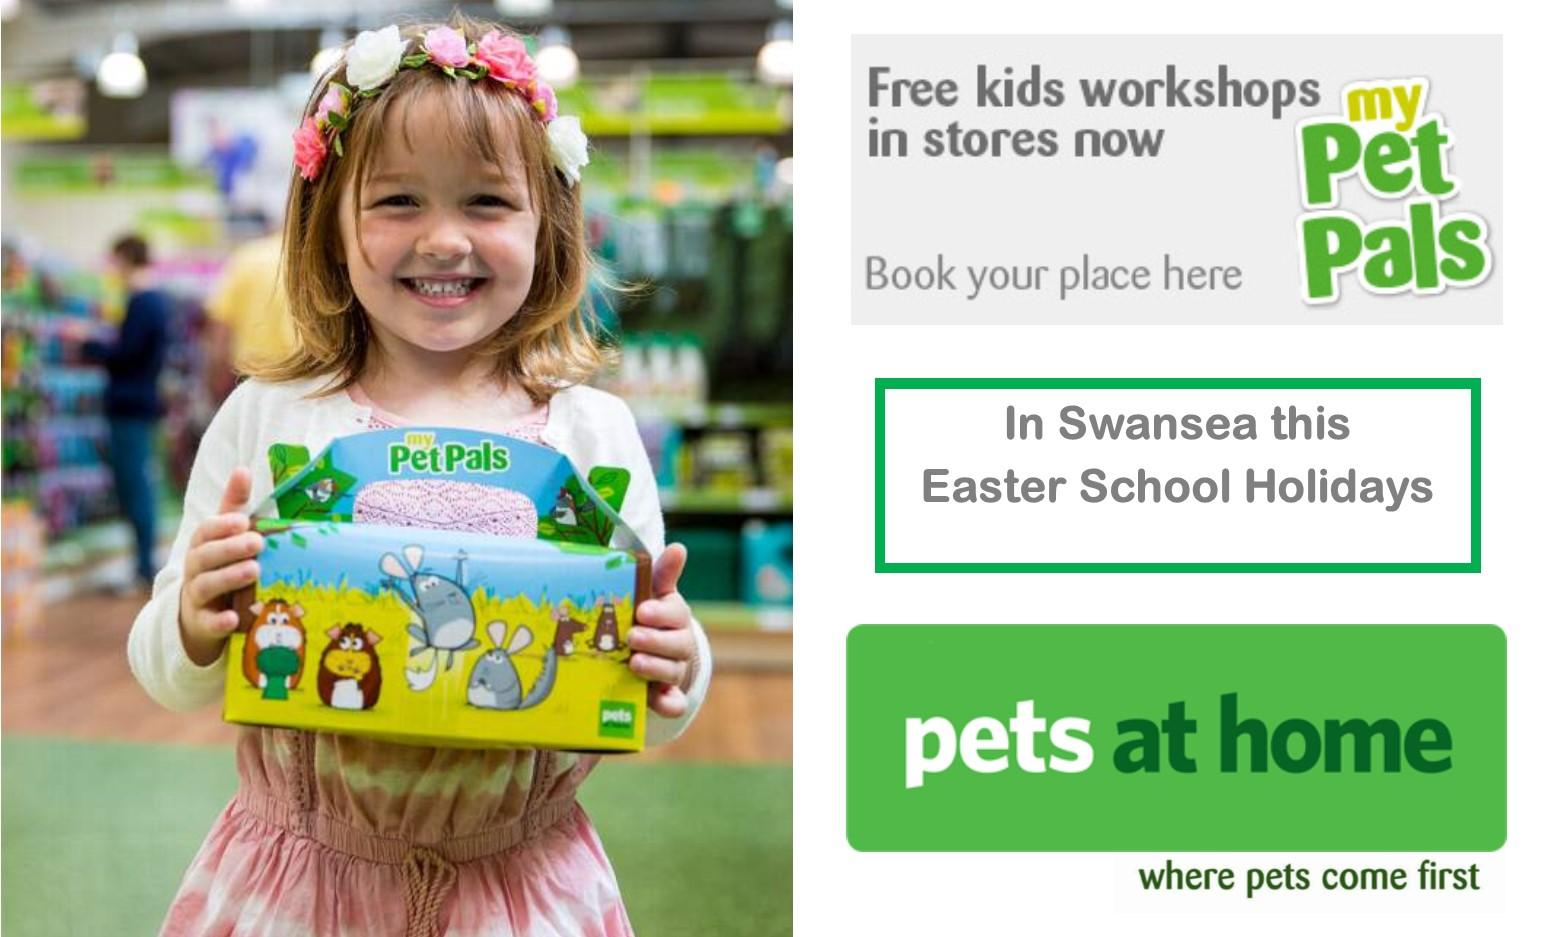 Easter Small Furries Pets at Home Workshop in Swansea